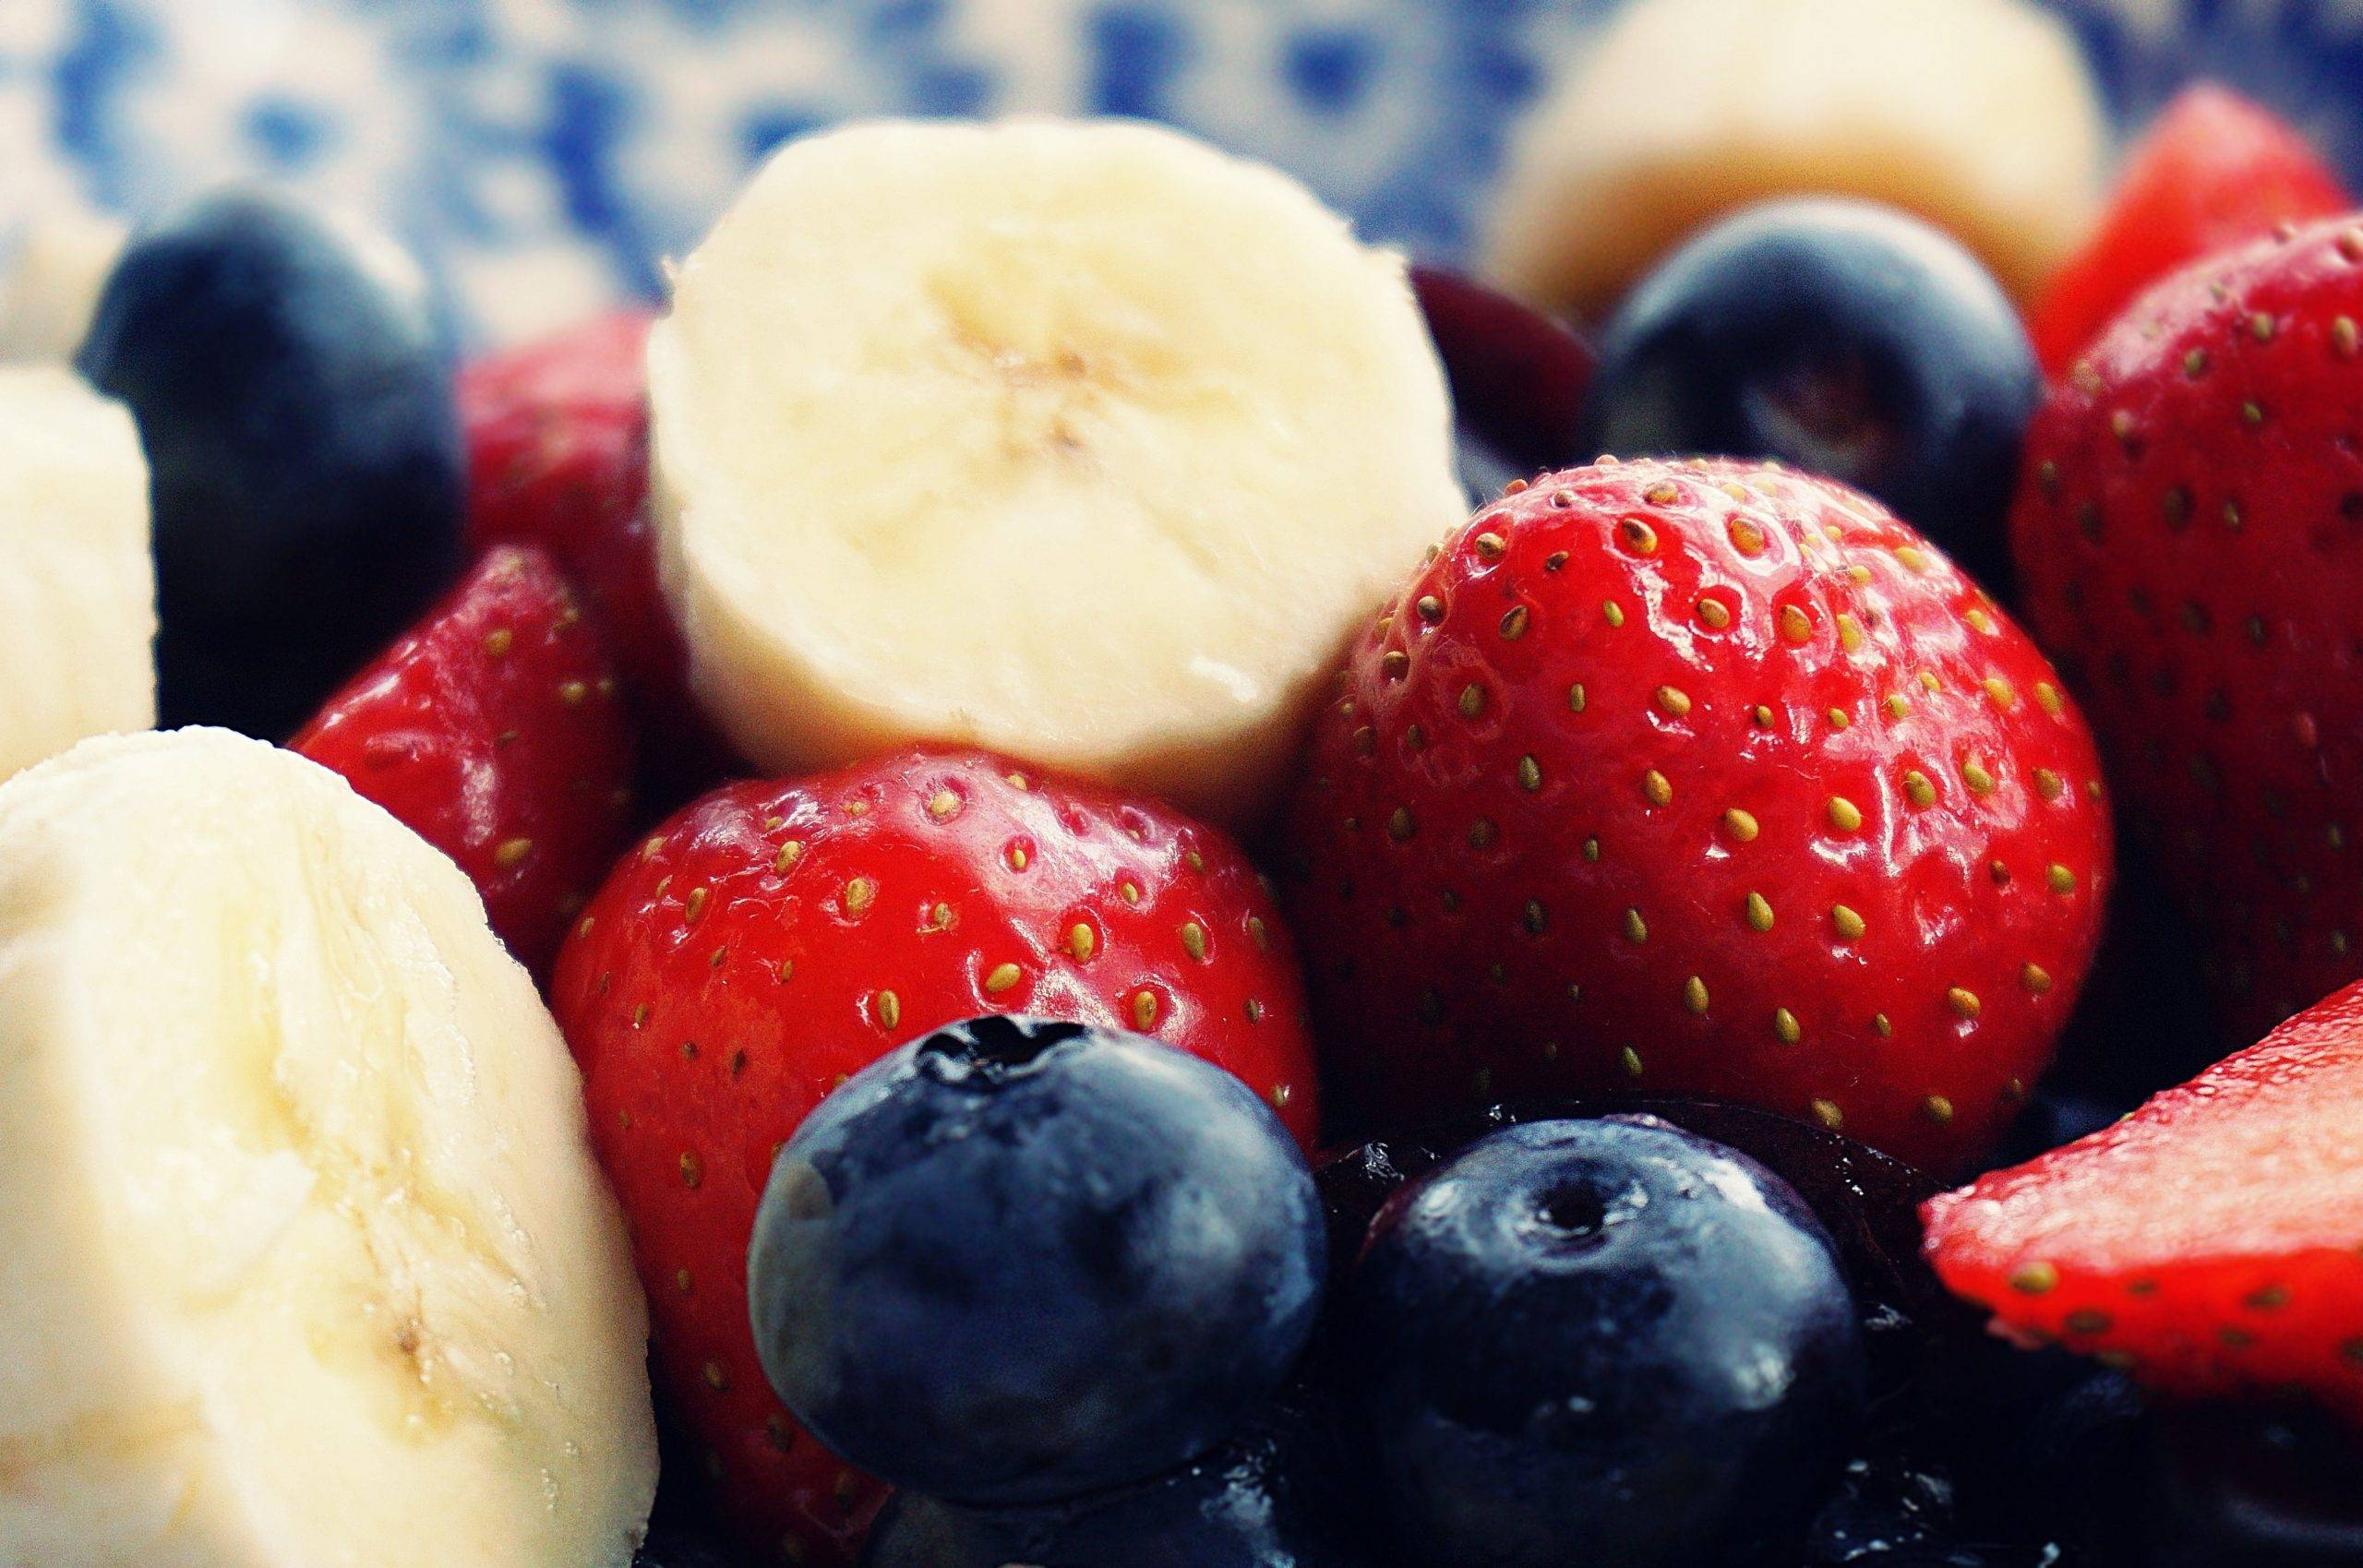 how to find out if fruit is ripe